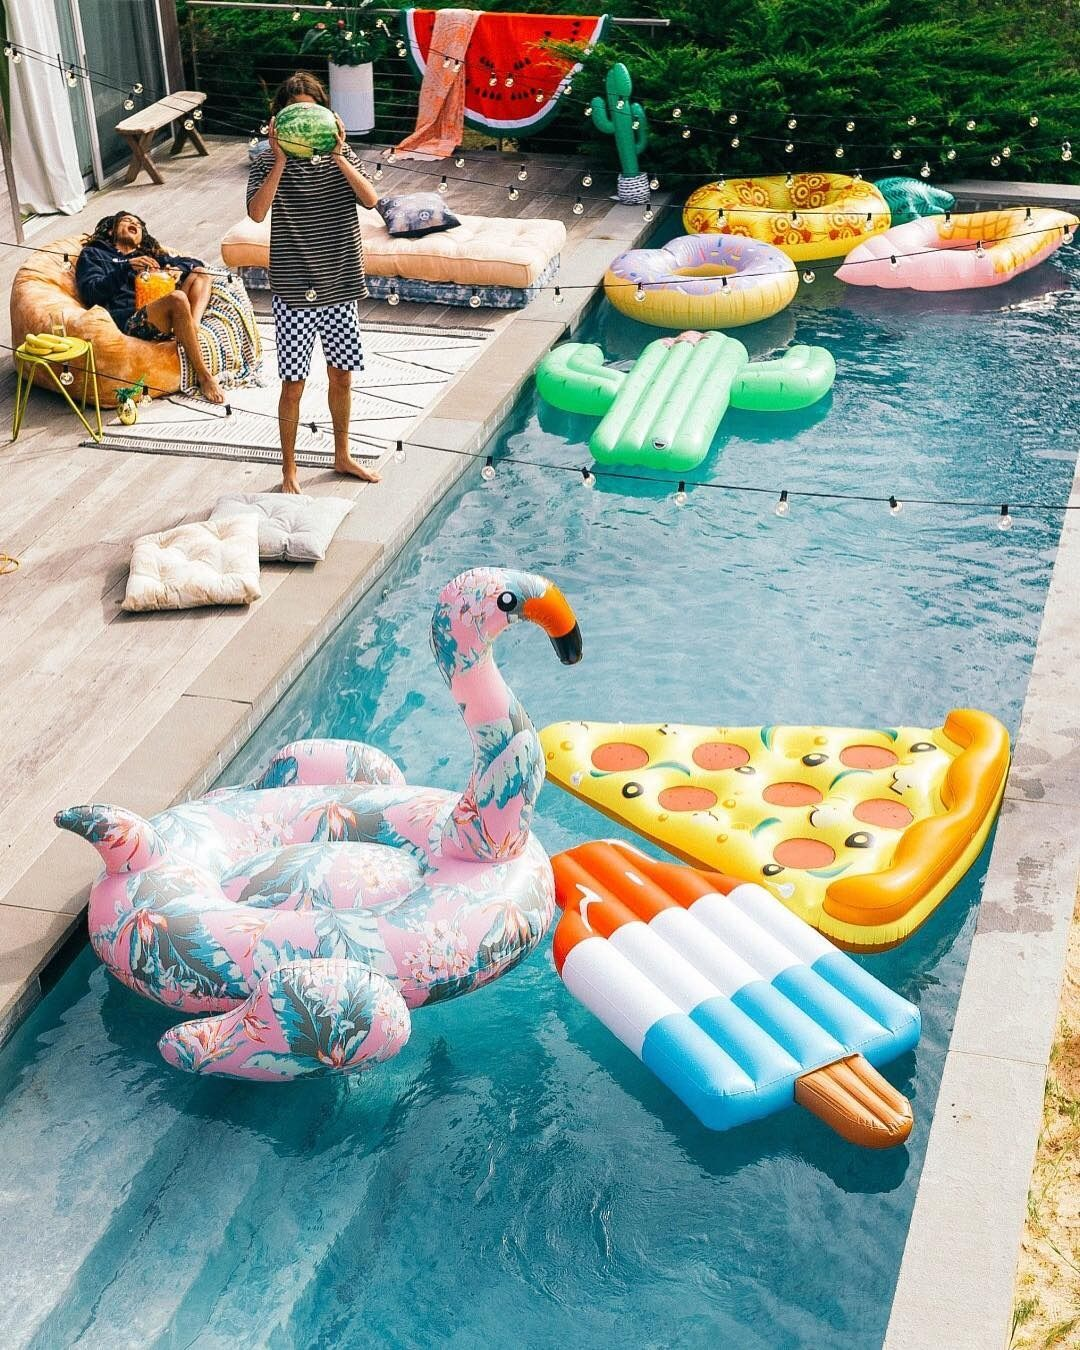 Flotadores Para Piscinas Pin De Sebas Gc En Pool Party Pinterest Flotadores